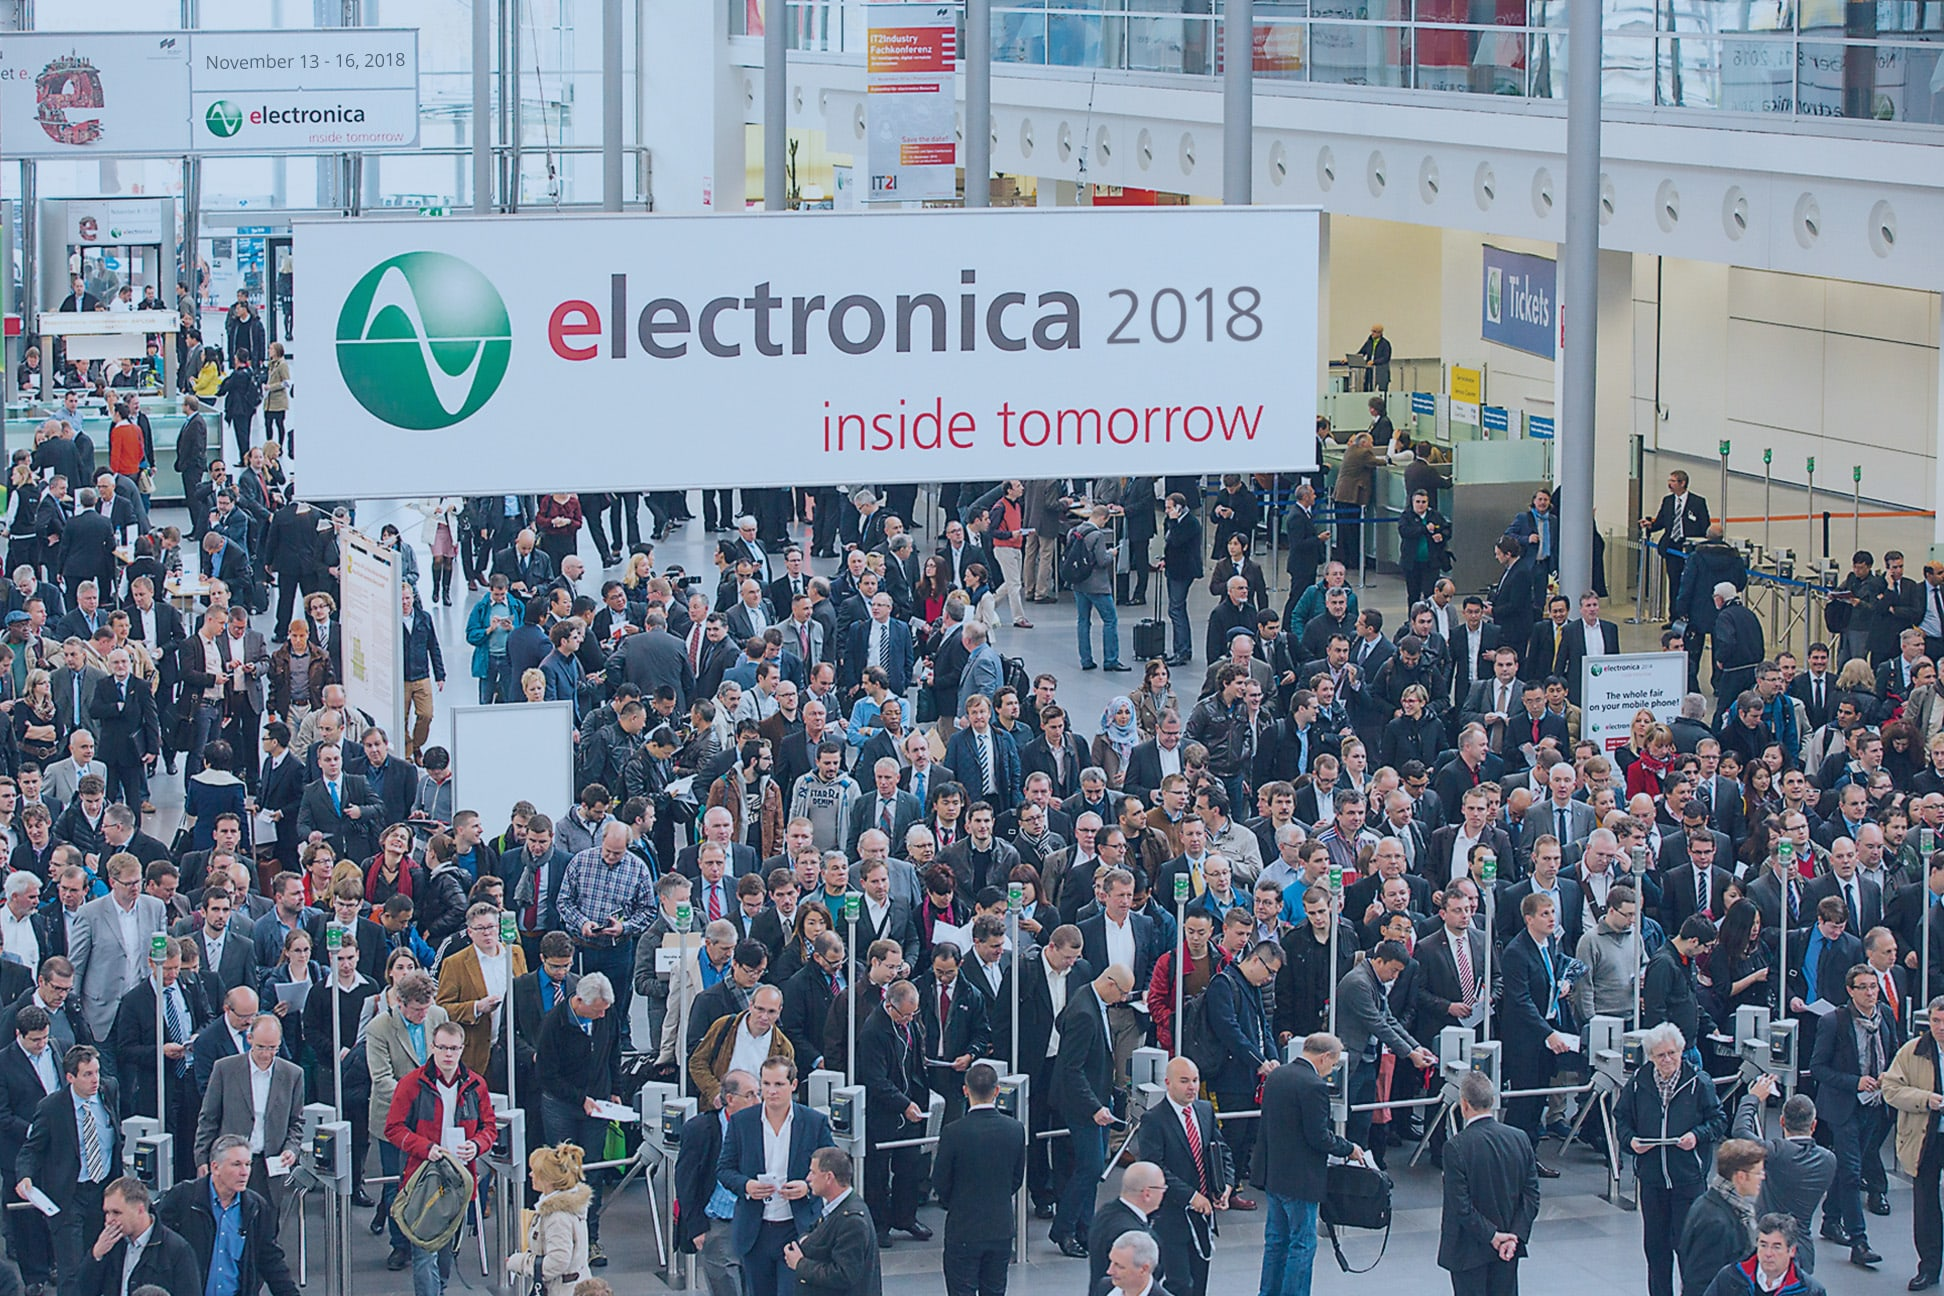 Sl Power Electronics We What Matters Repair Center Inc Specialize In Industrial Electronic Exhibits At Electronica 2018